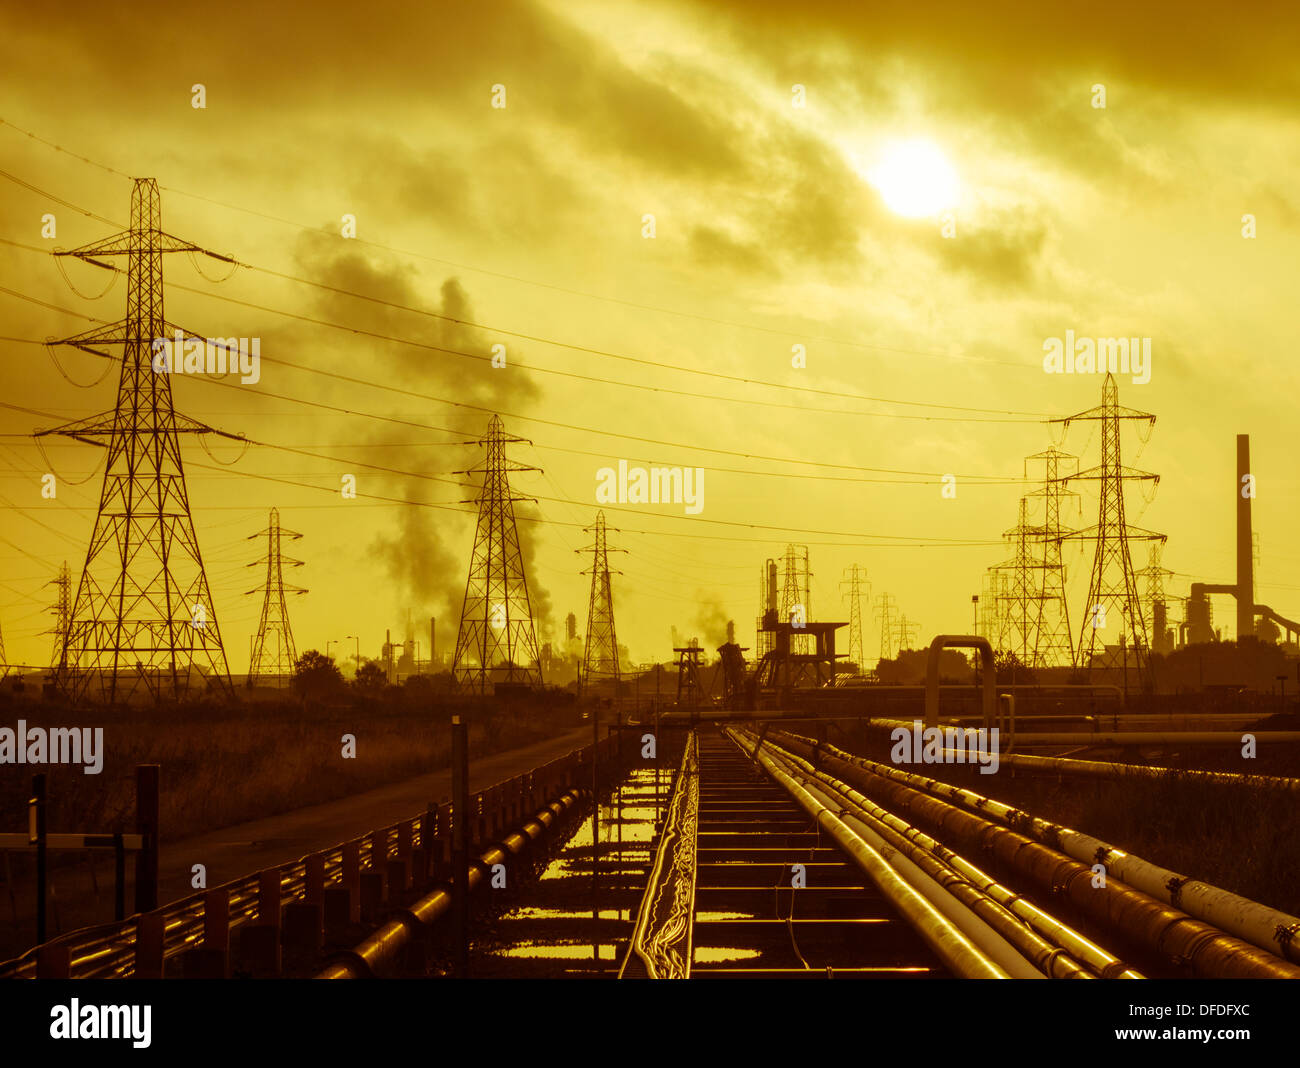 Pipelines and pylons at Seal Sands refineries and petro chemical works between Hartlepool and Middlesbrough, England, UK - Stock Image